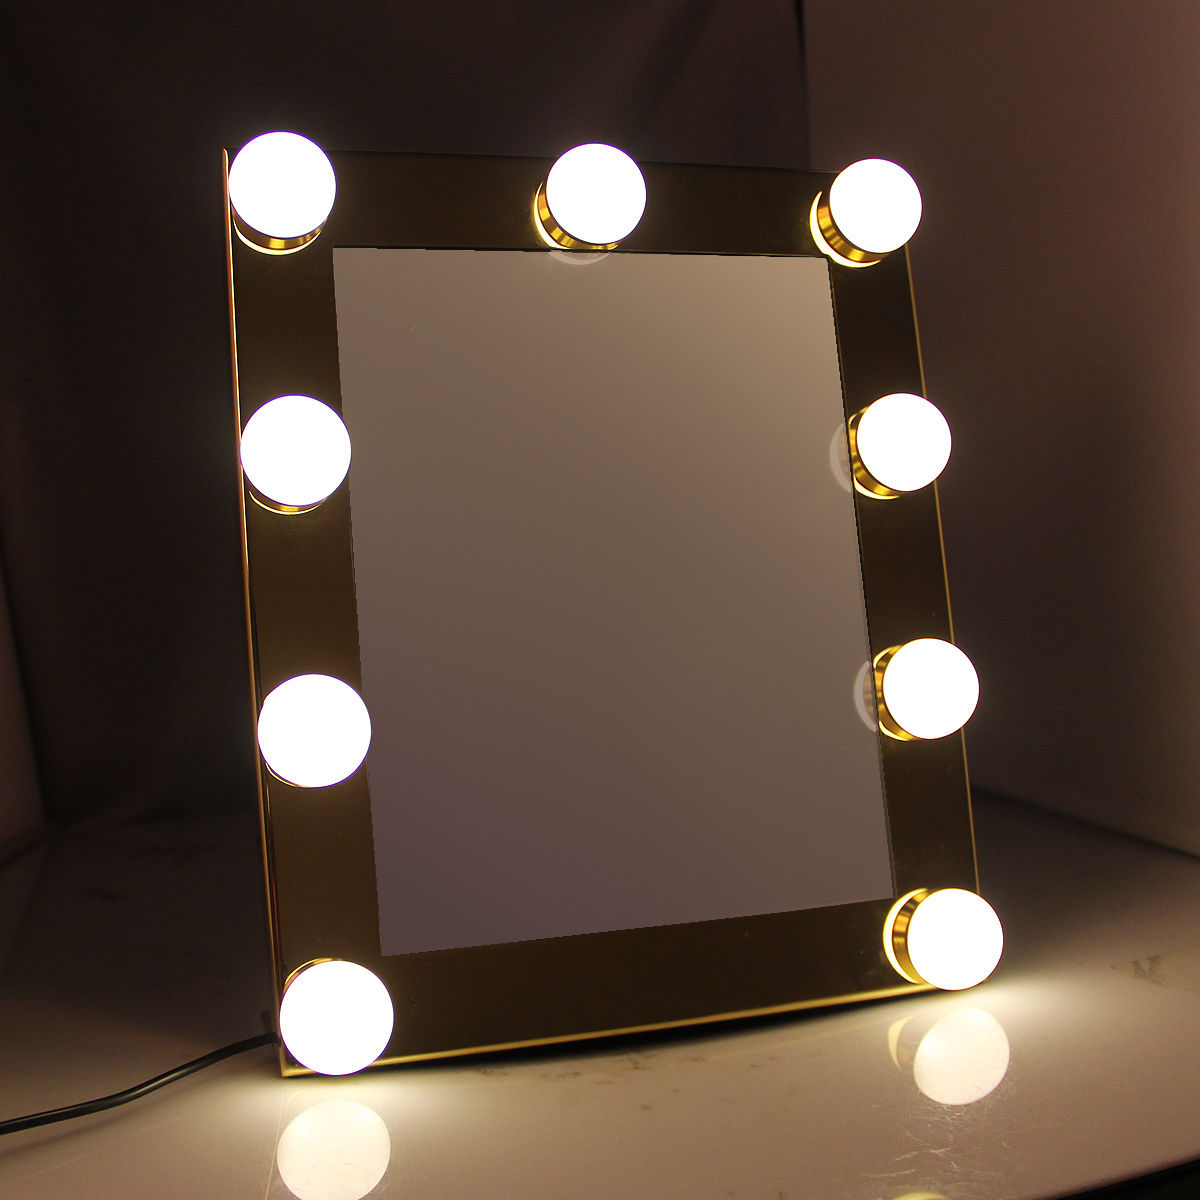 Miroir de maquillage cran tactile 9leds hollywood clair for Miroir des 7 astres